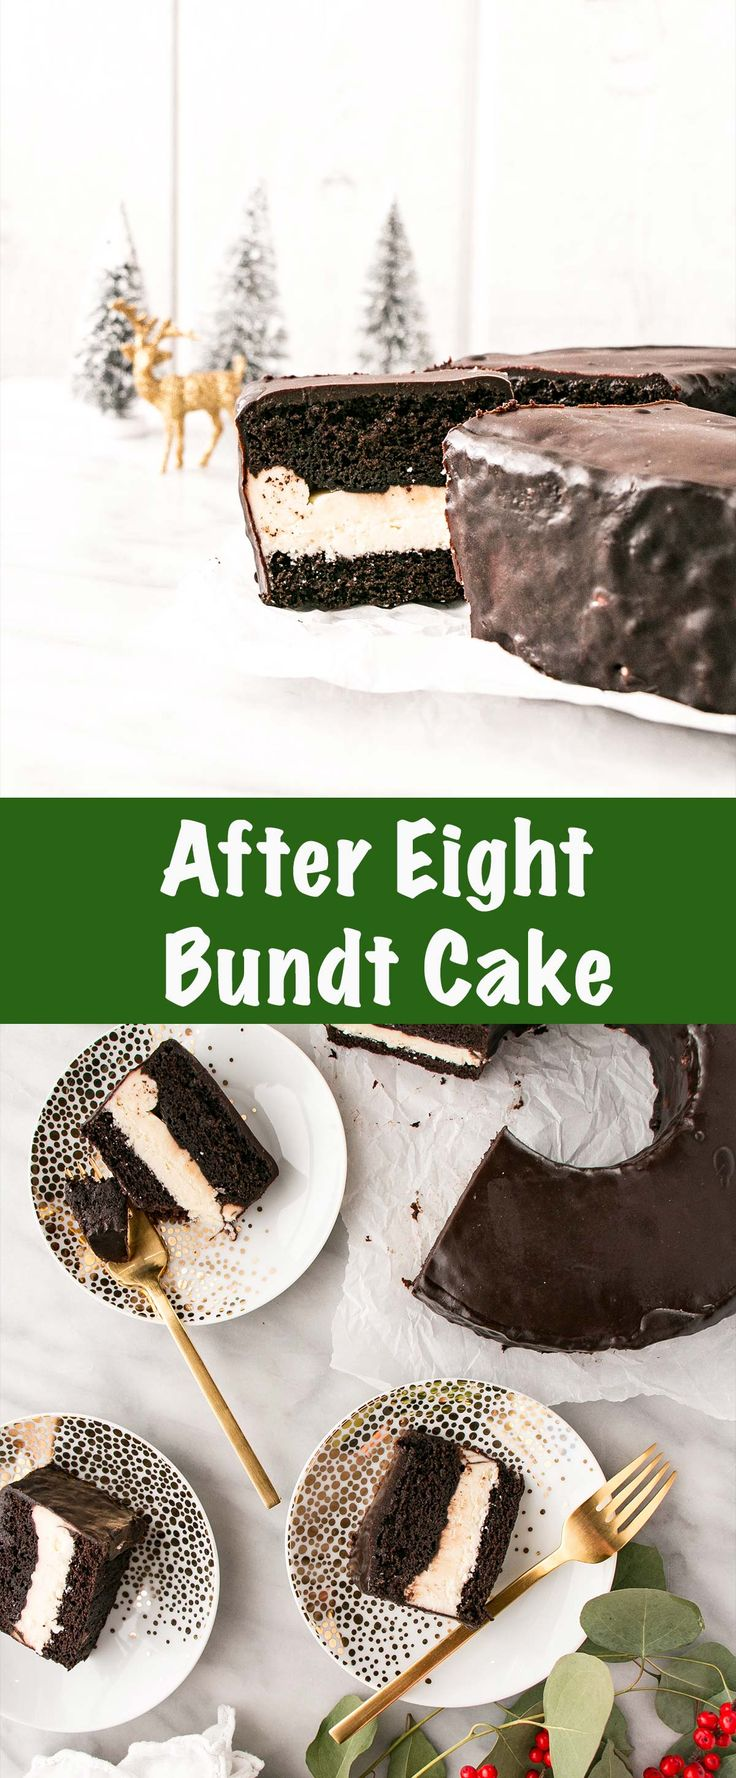 This After Eight Bundt Cake is a holiday classic filled with dark chocolate cake, creamy peppermint buttercream, and covered in a dark chocolate glaze. #cake #christmas #aftereight